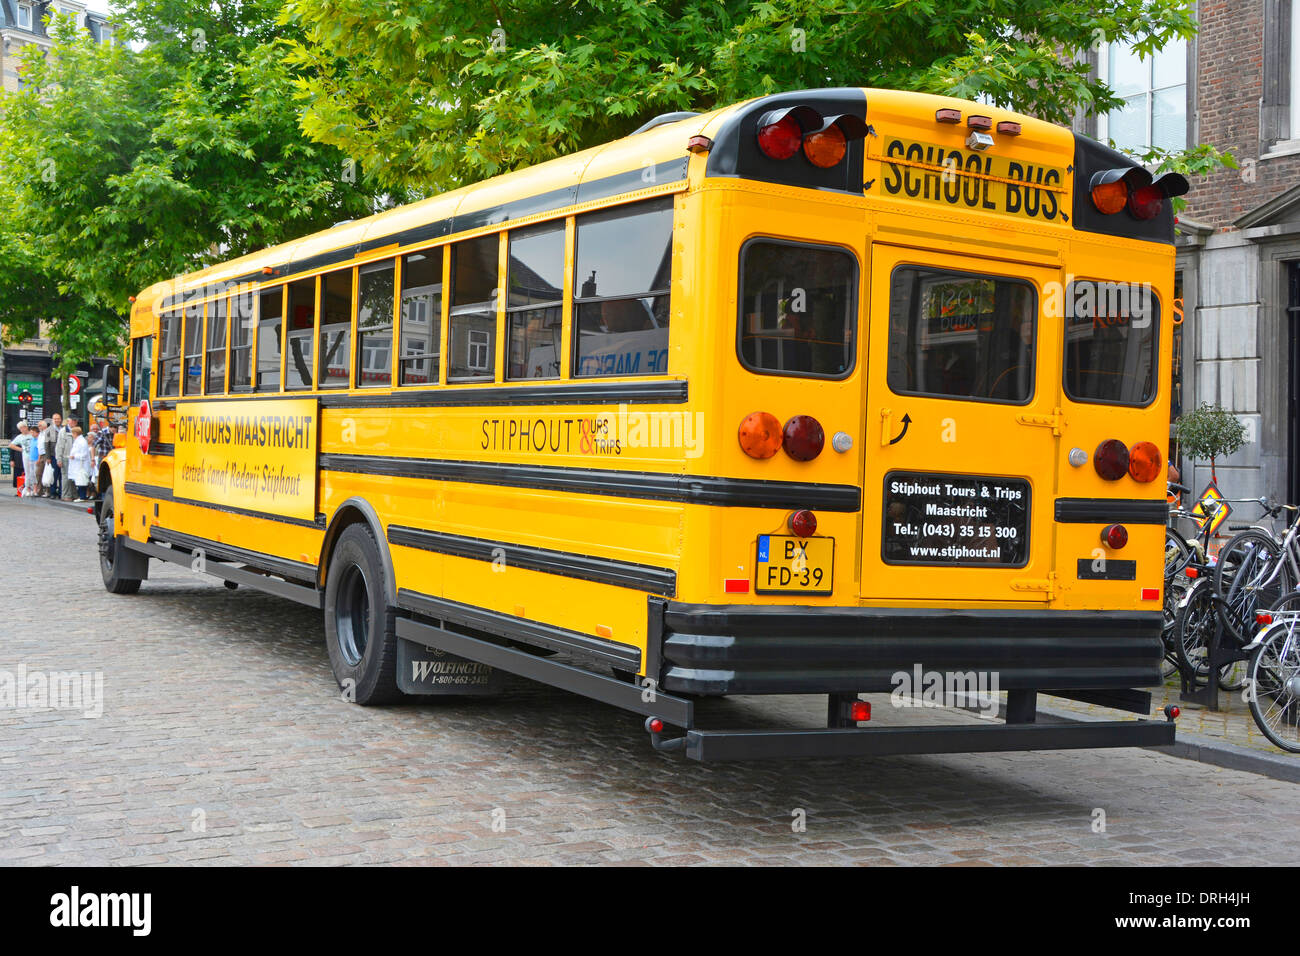 Yellow American school bus adapted for city sightseeing tours of Maastricht Limburg Netherlands Holland - Stock Image